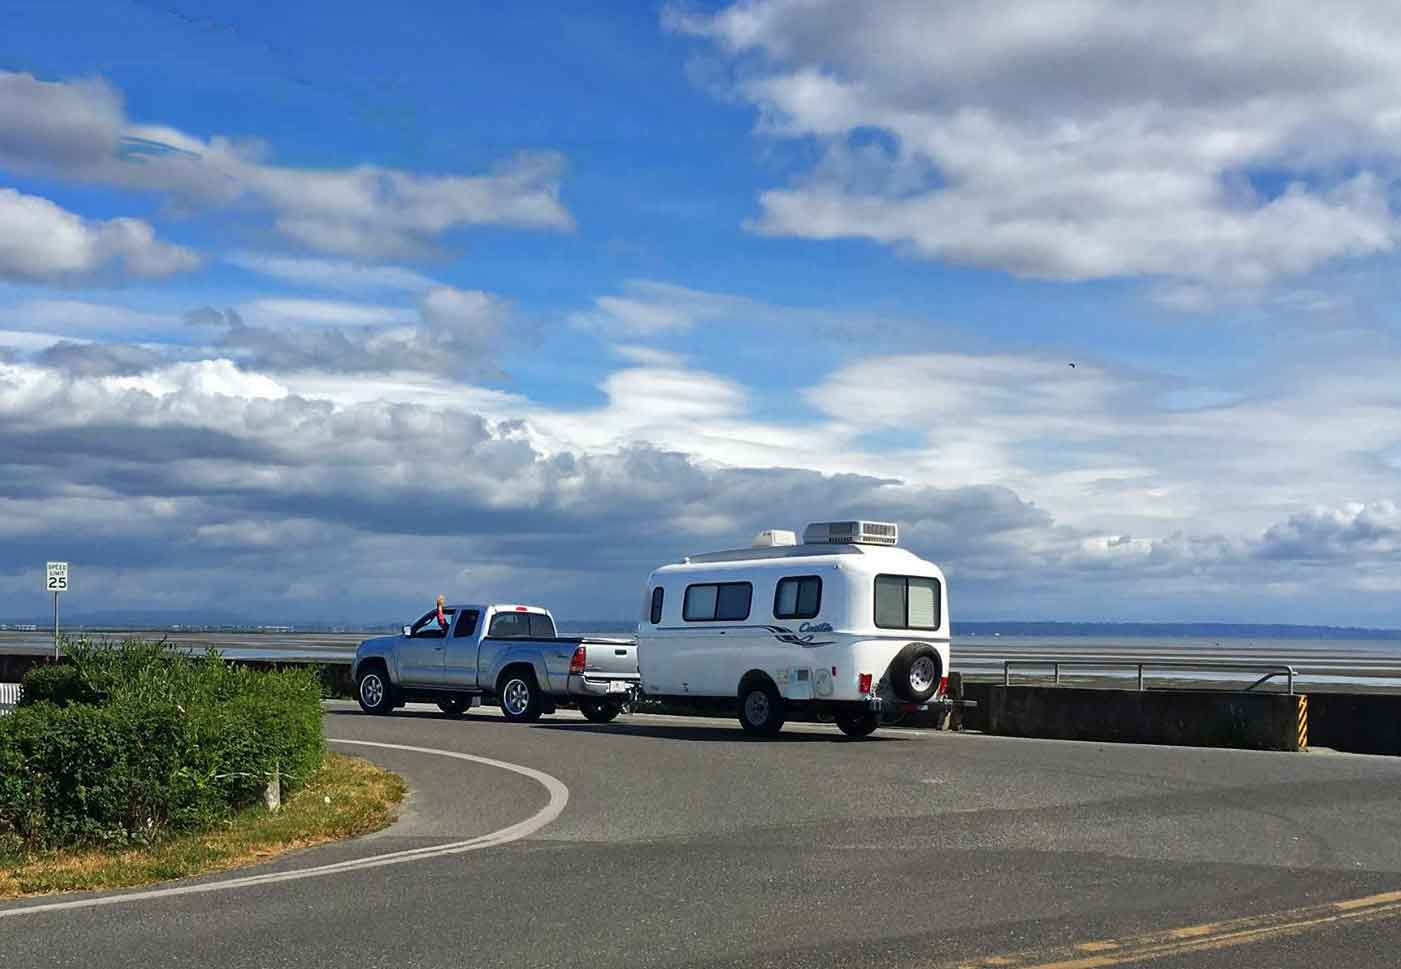 On the road with our Small Travel Trailer